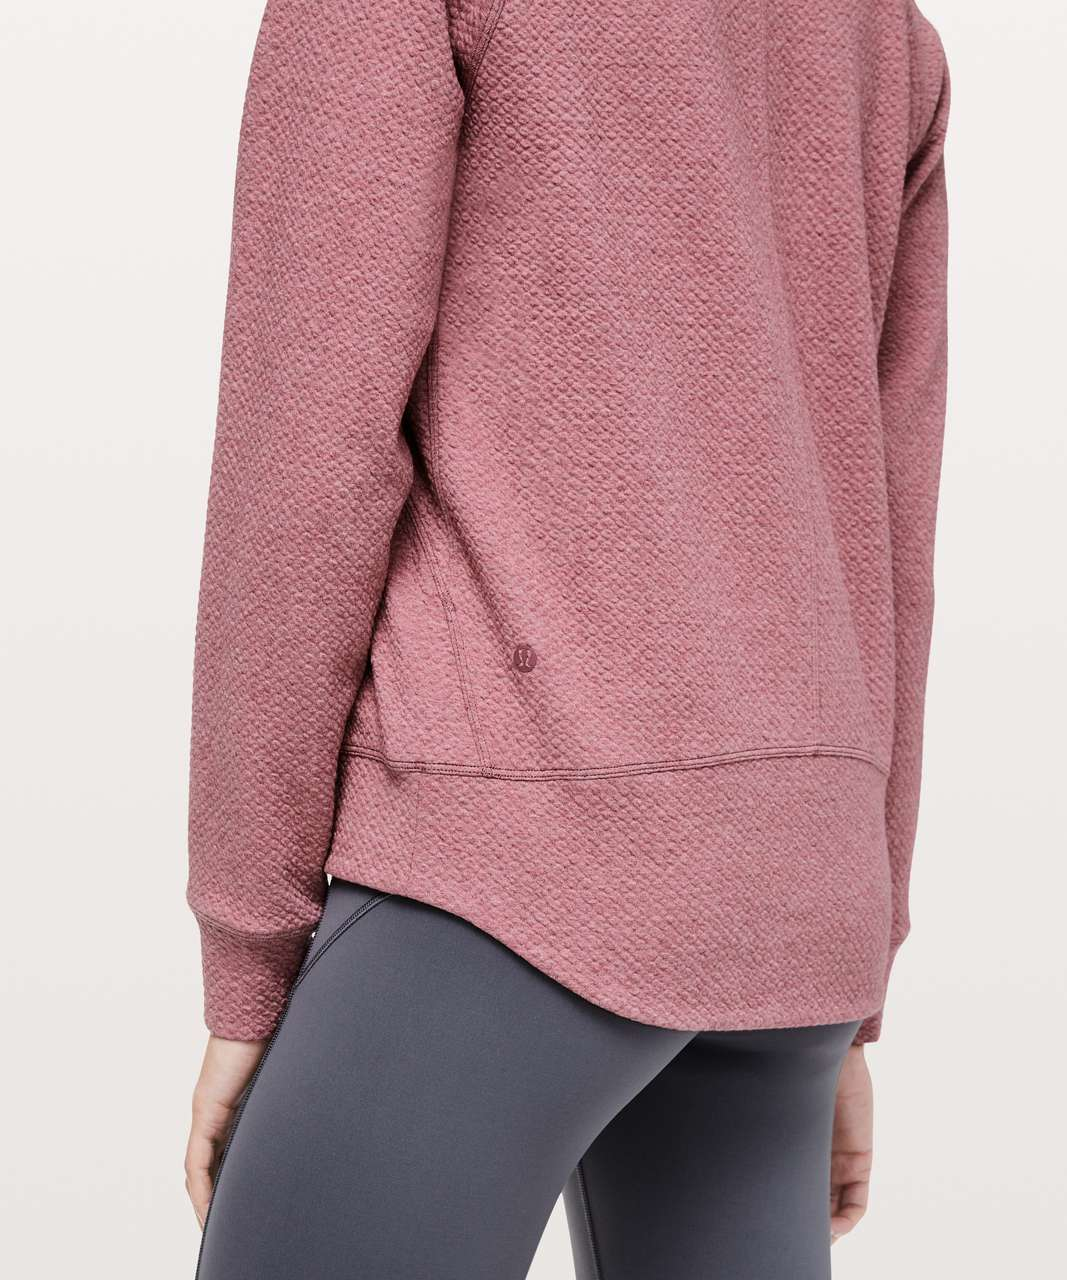 Lululemon Catch A Moment Crew - Heathered So Merlot / So Merlot